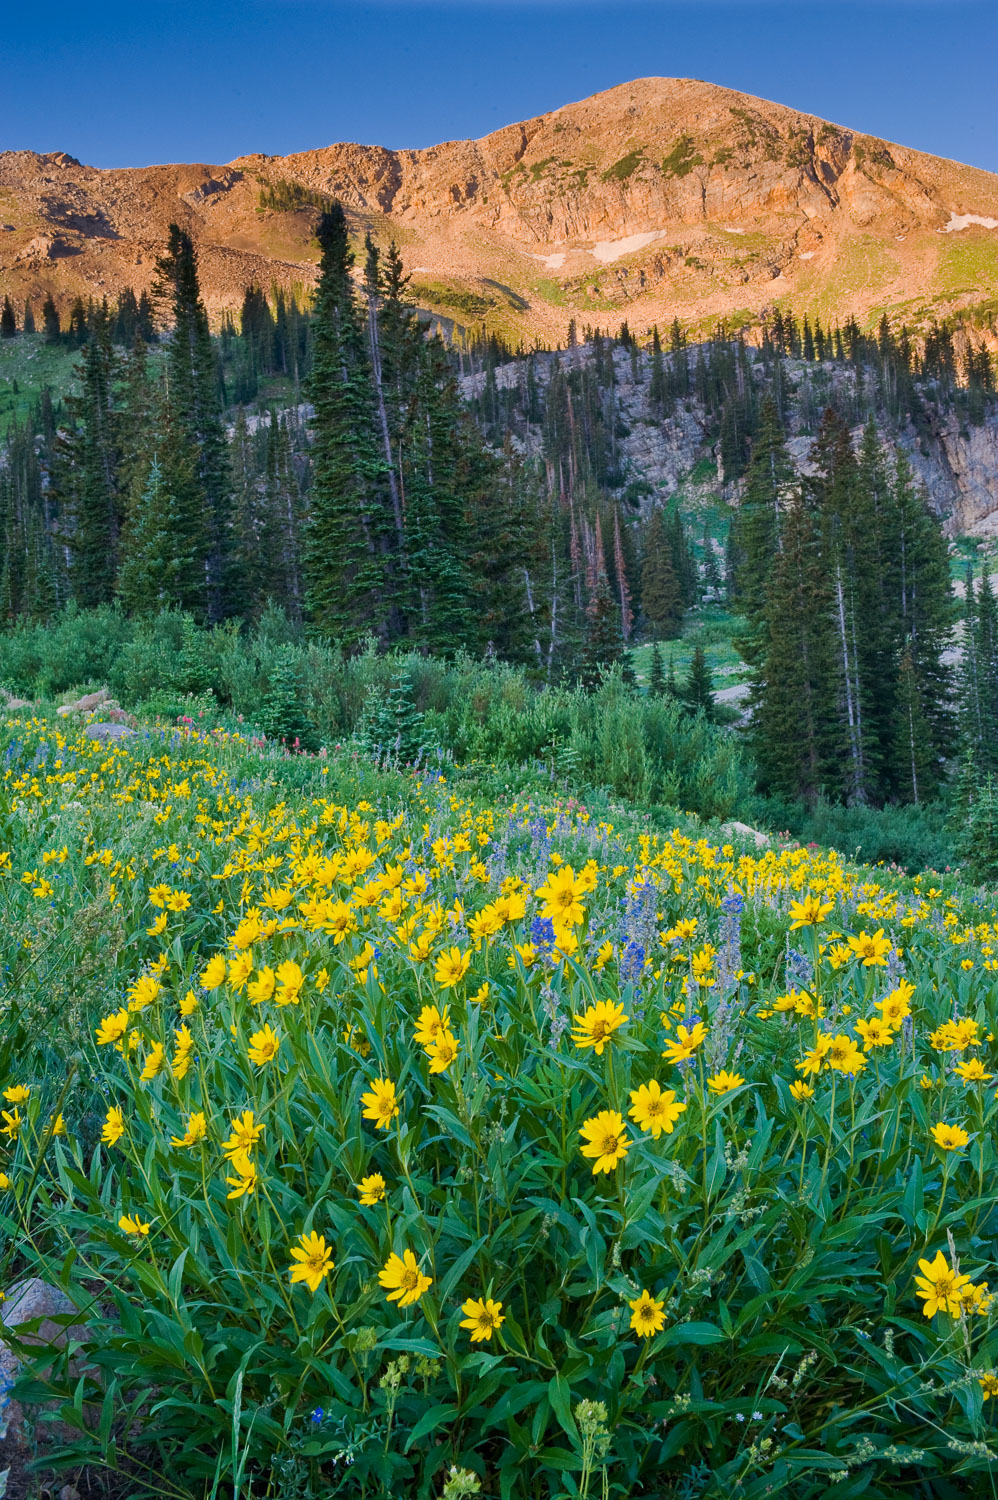 Sugarloaf Mountain and Arrowleaf Balsamroot at Sunrise, Albion B